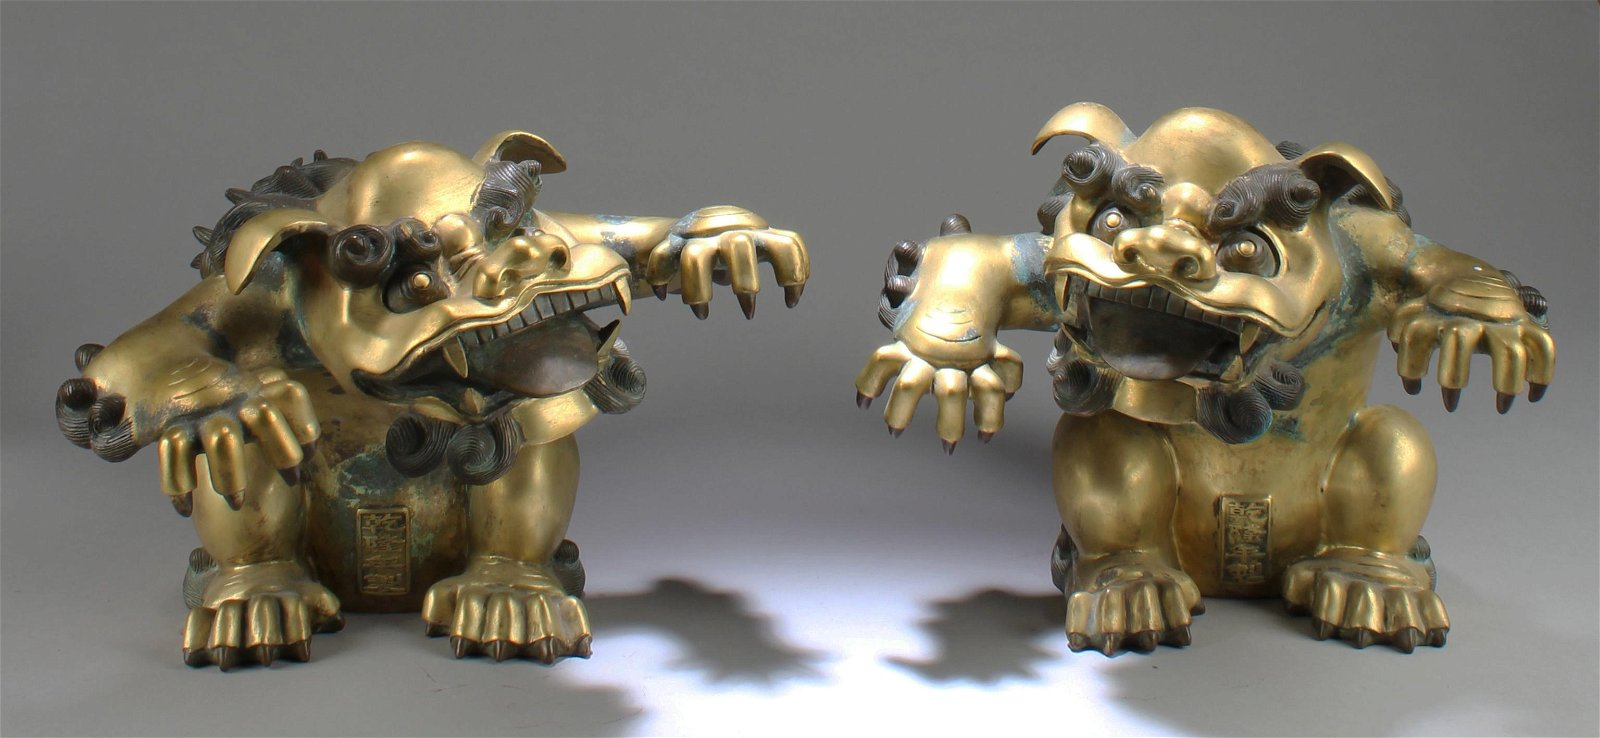 A Pair of Antique  Gilt Bronze Mythical Beast Statues